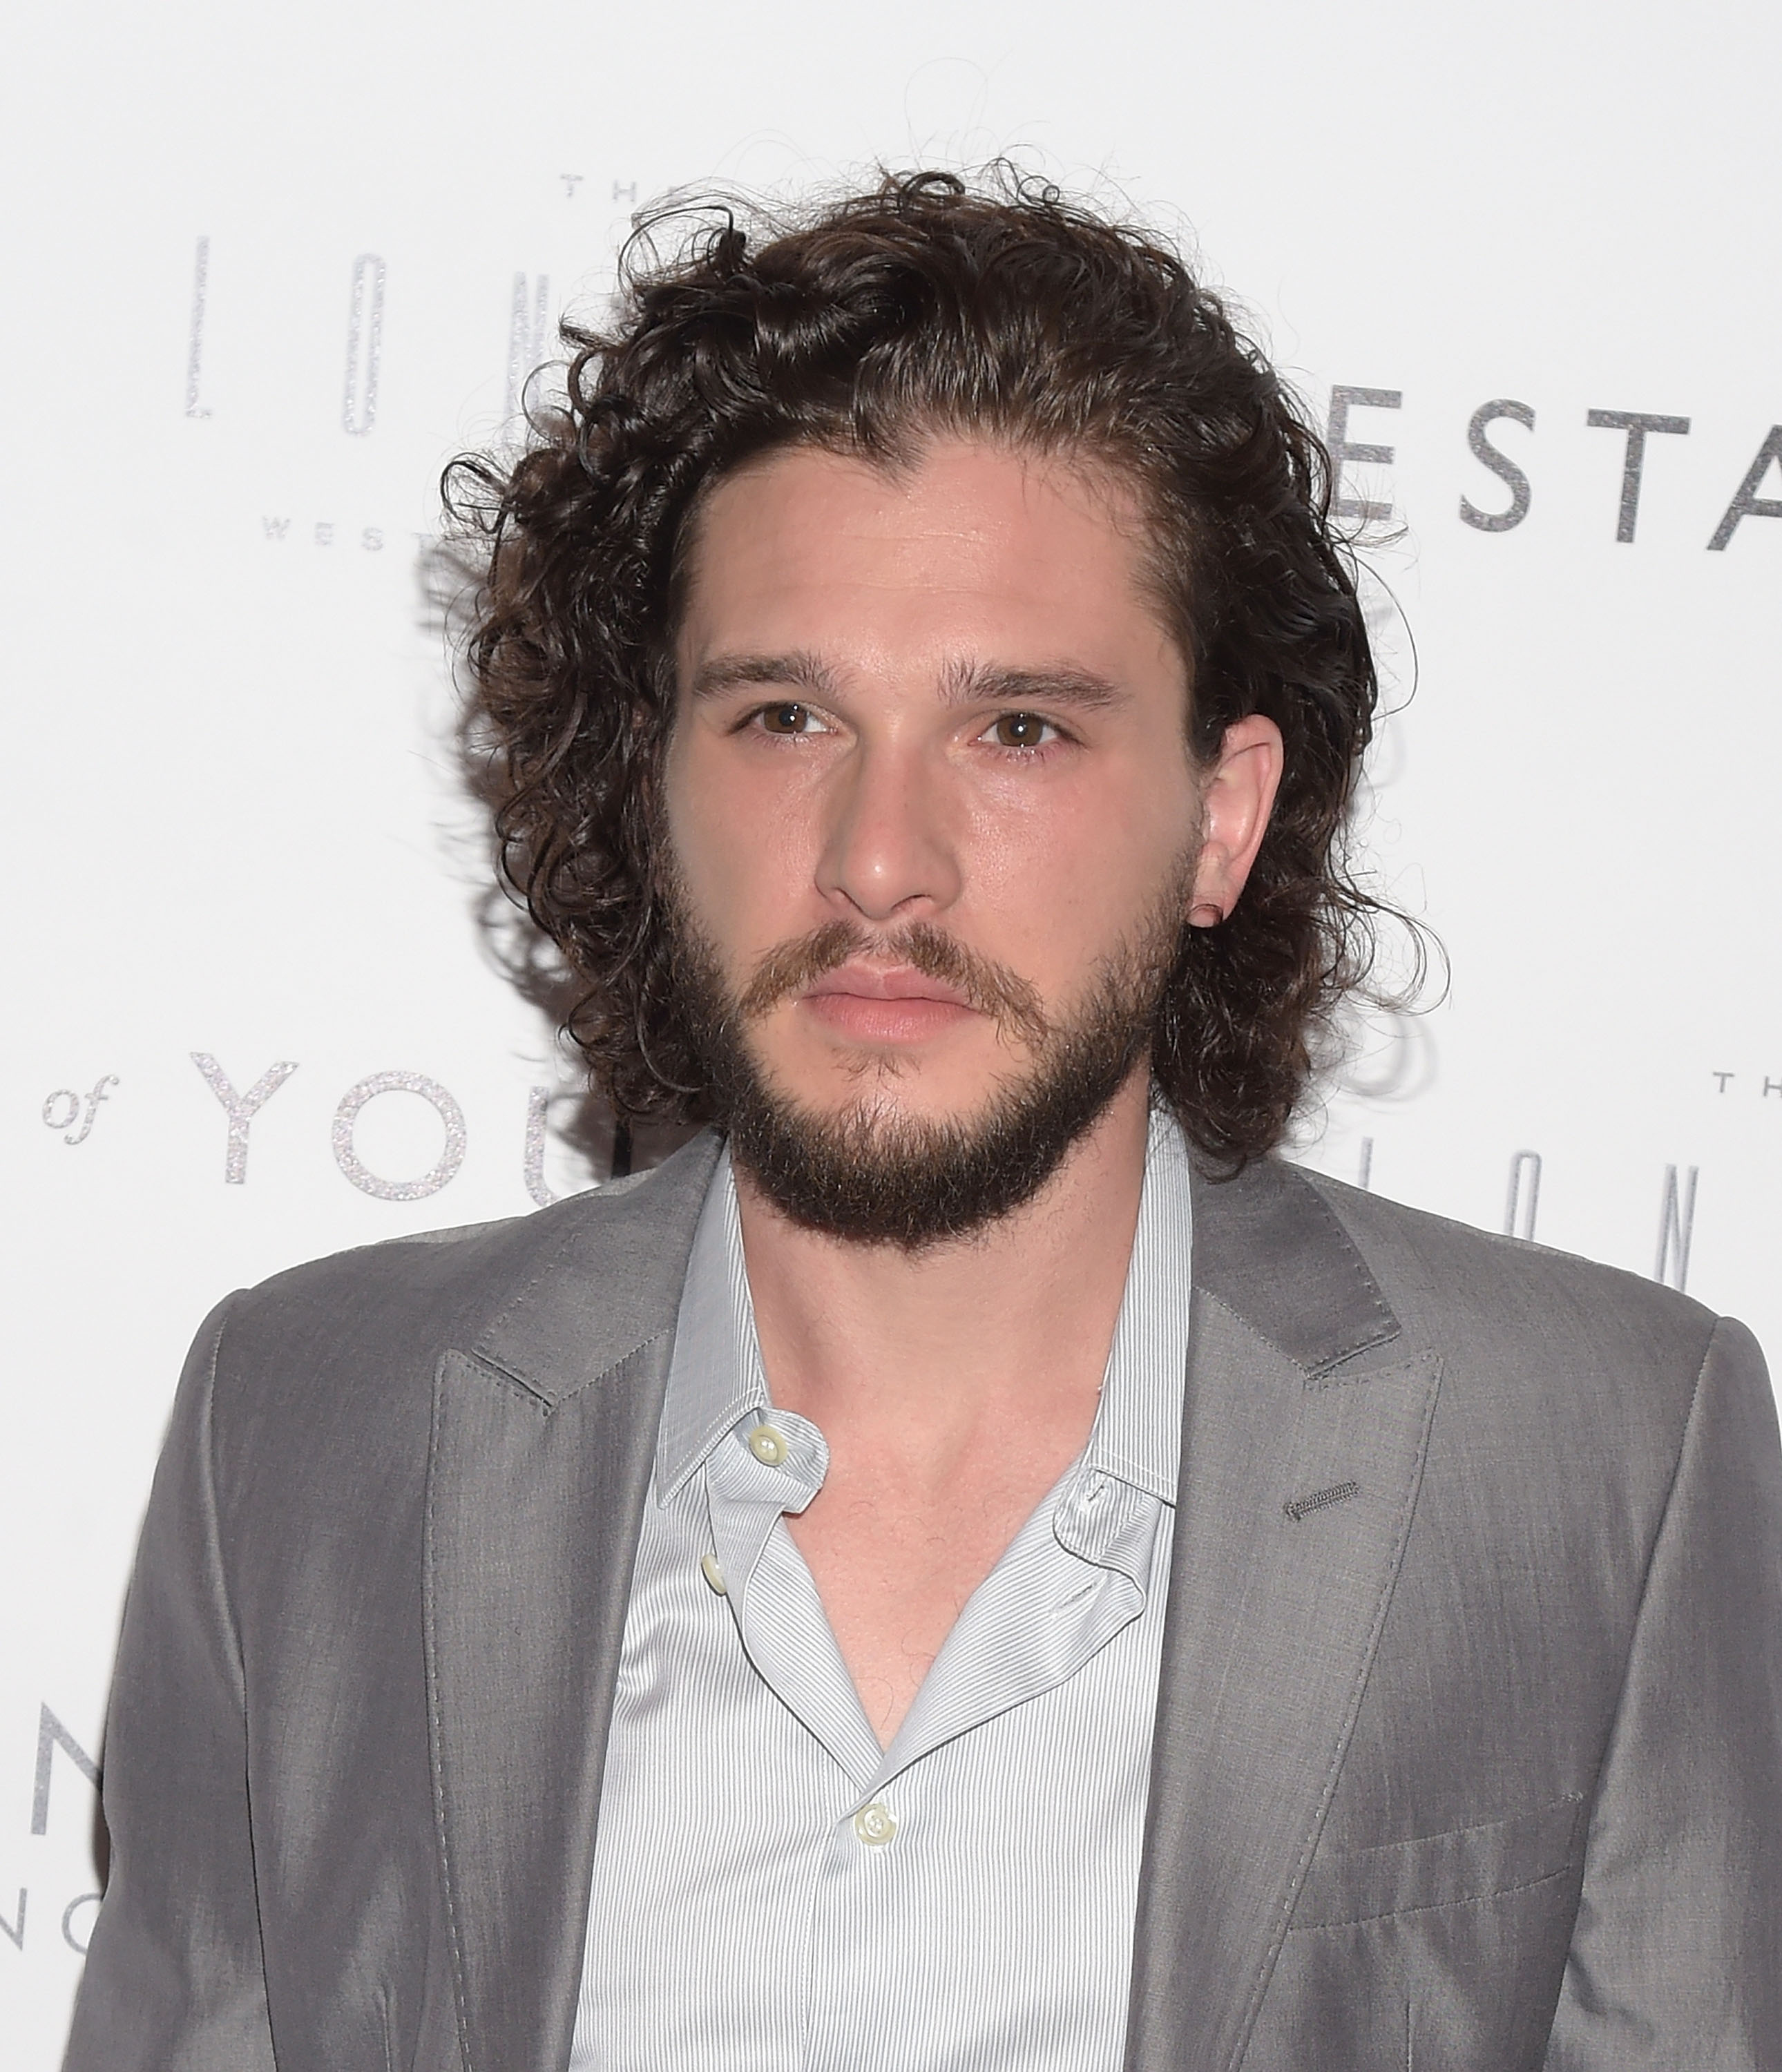 Kit Harington: 'Game Of Thrones' Star Kit Harington Photographed In